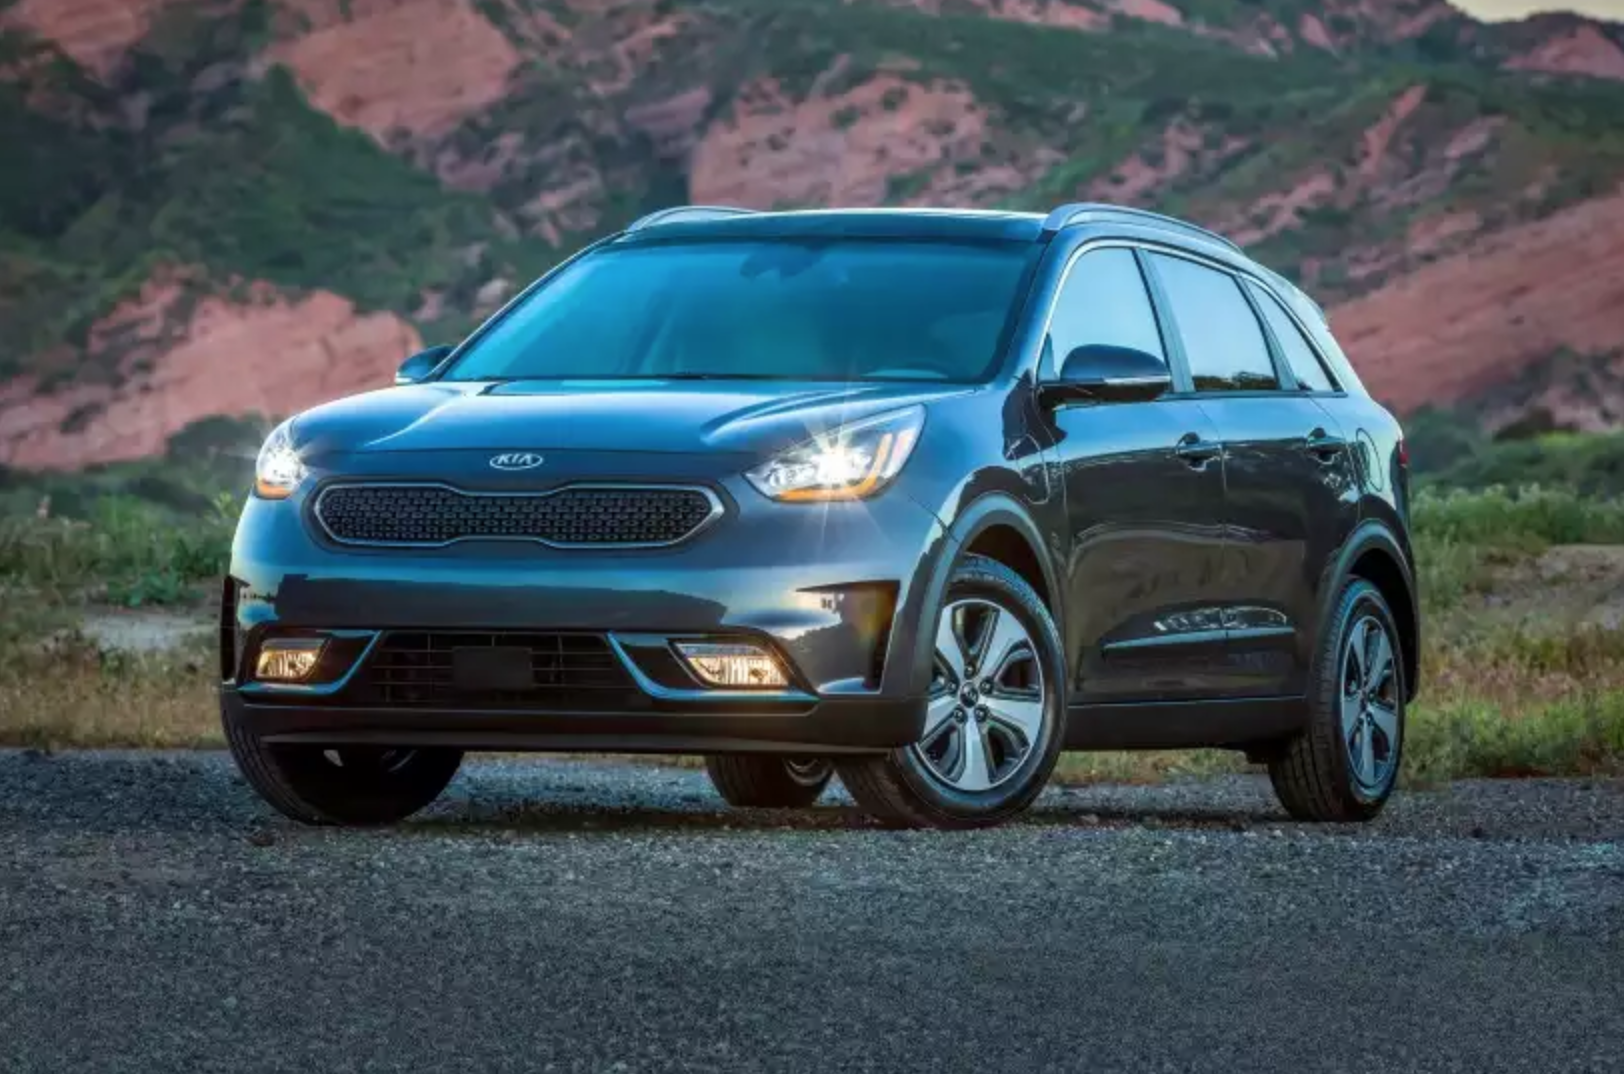 2018 Kia Niro in Georgia